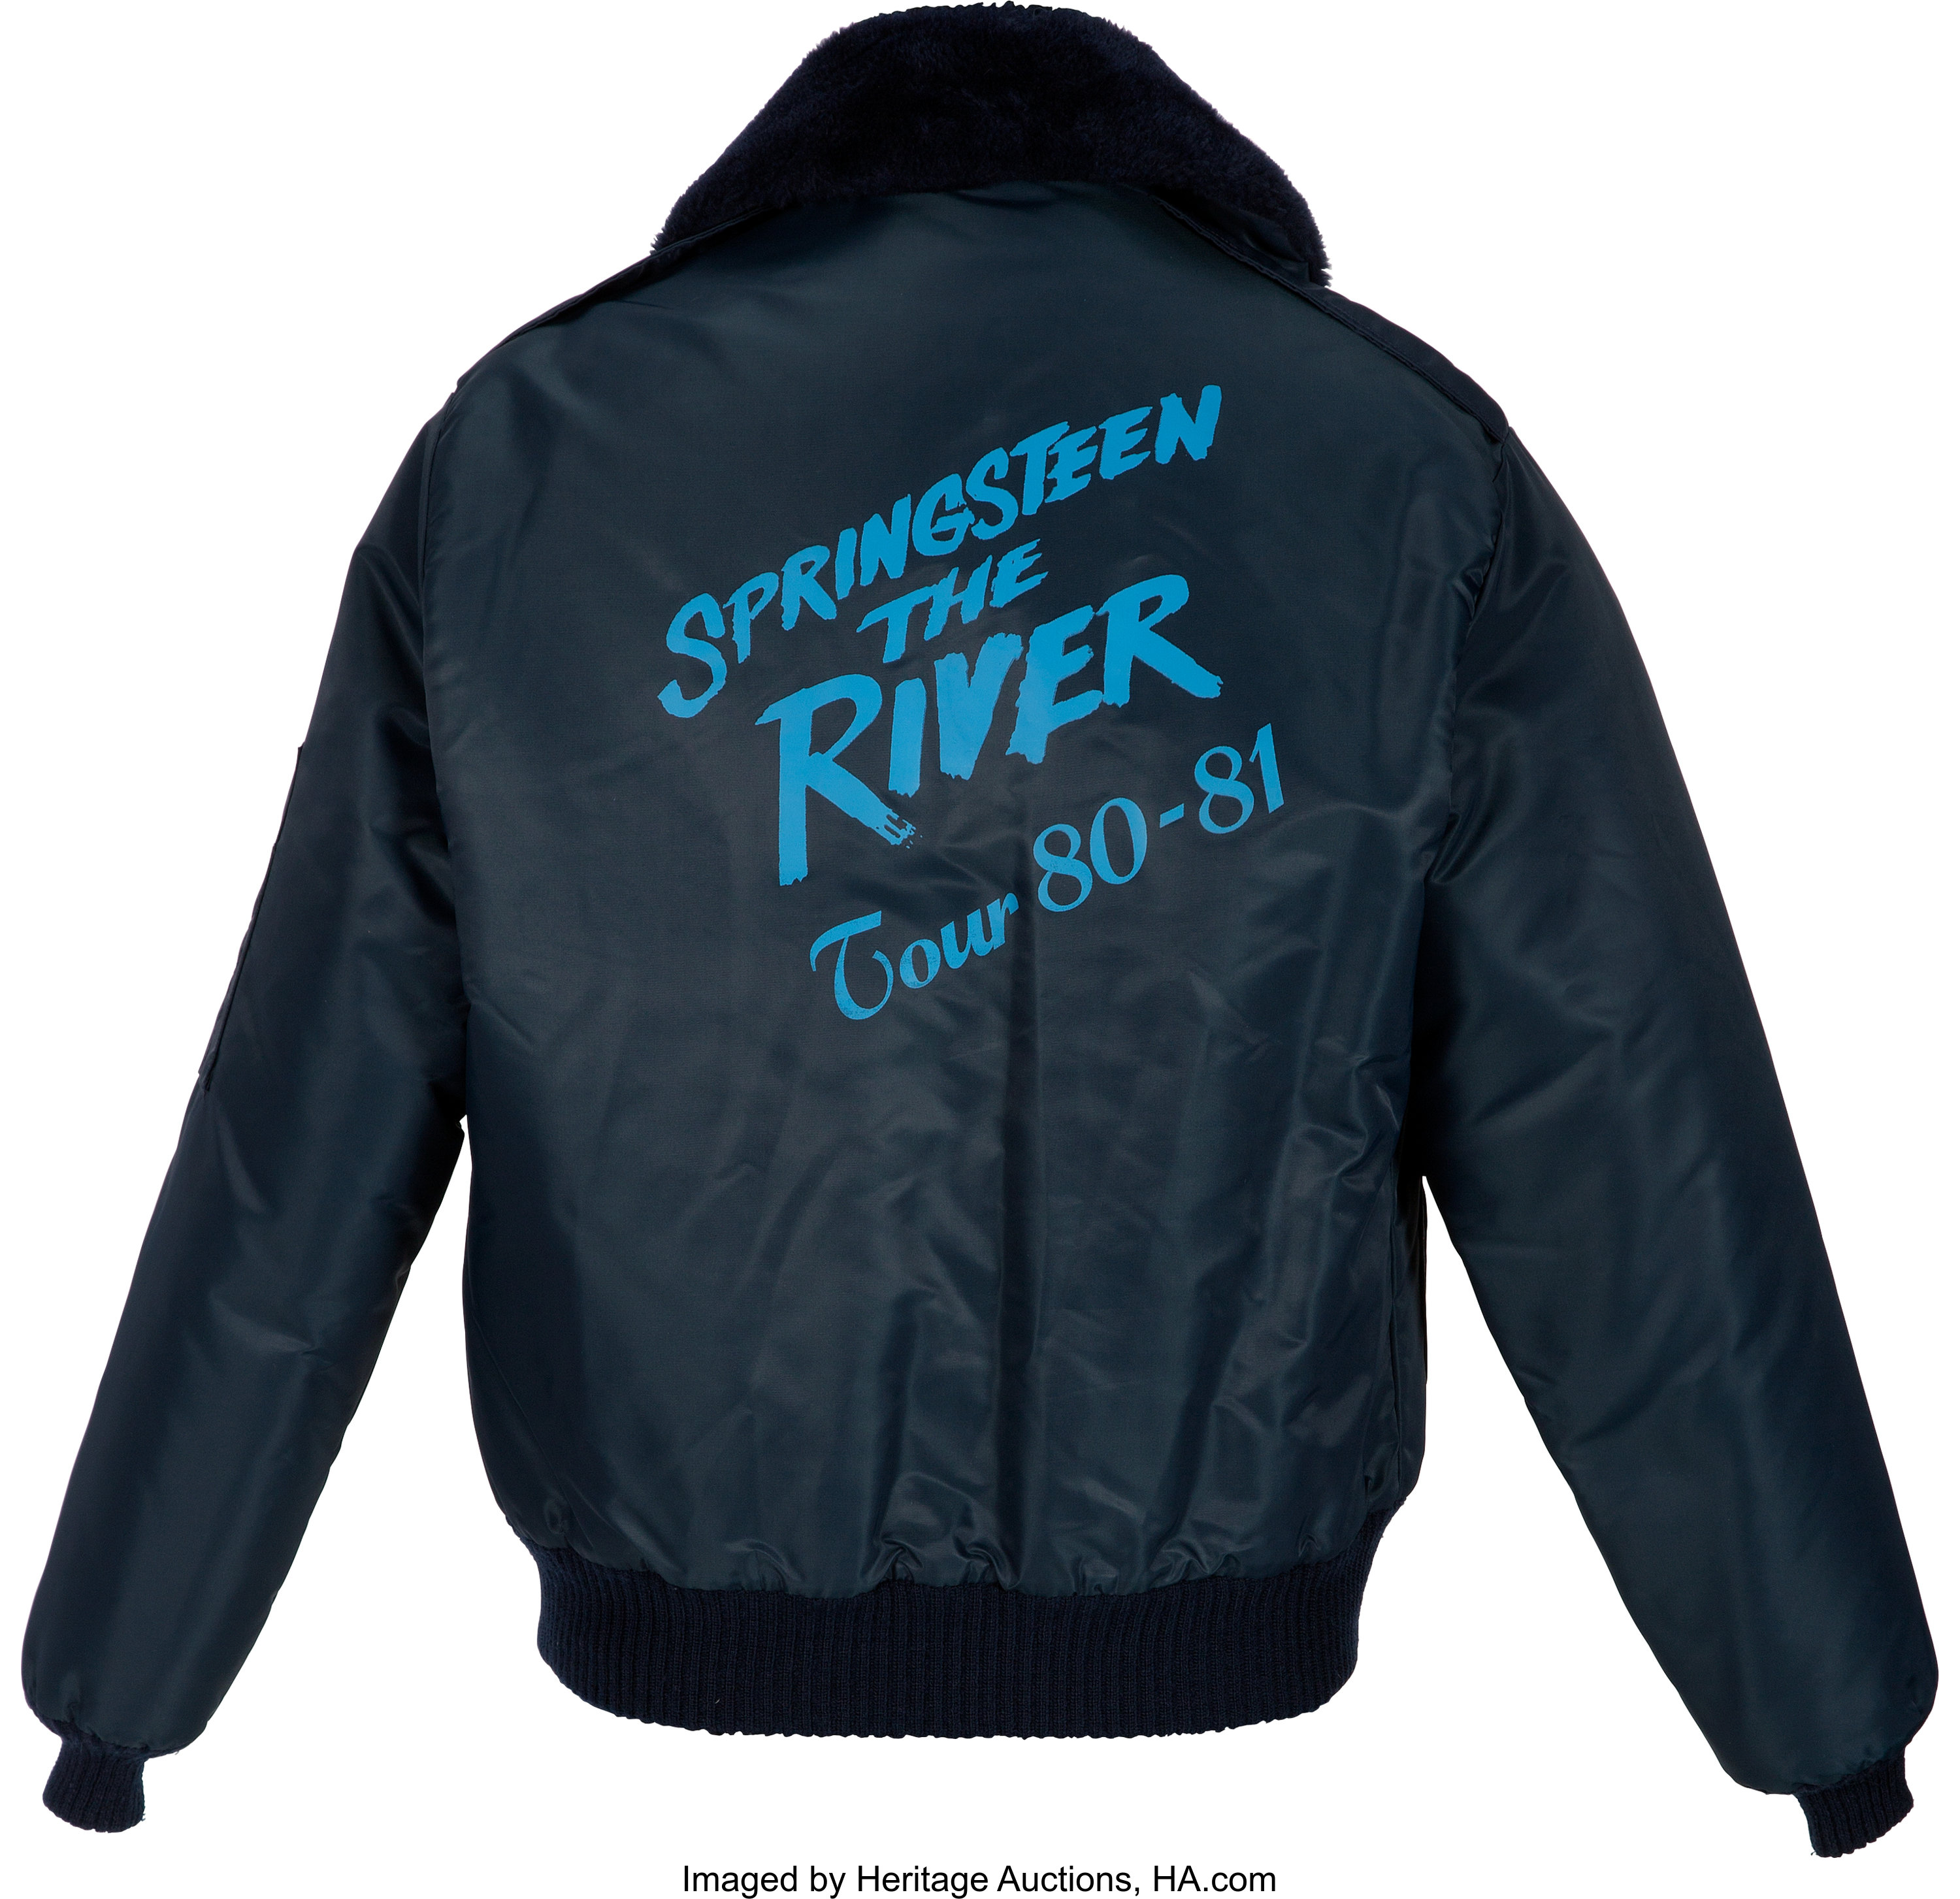 Bruce Springsteen The River Tour Jacket Circa 1980 1981 Music Lot 89625 Heritage Auctions